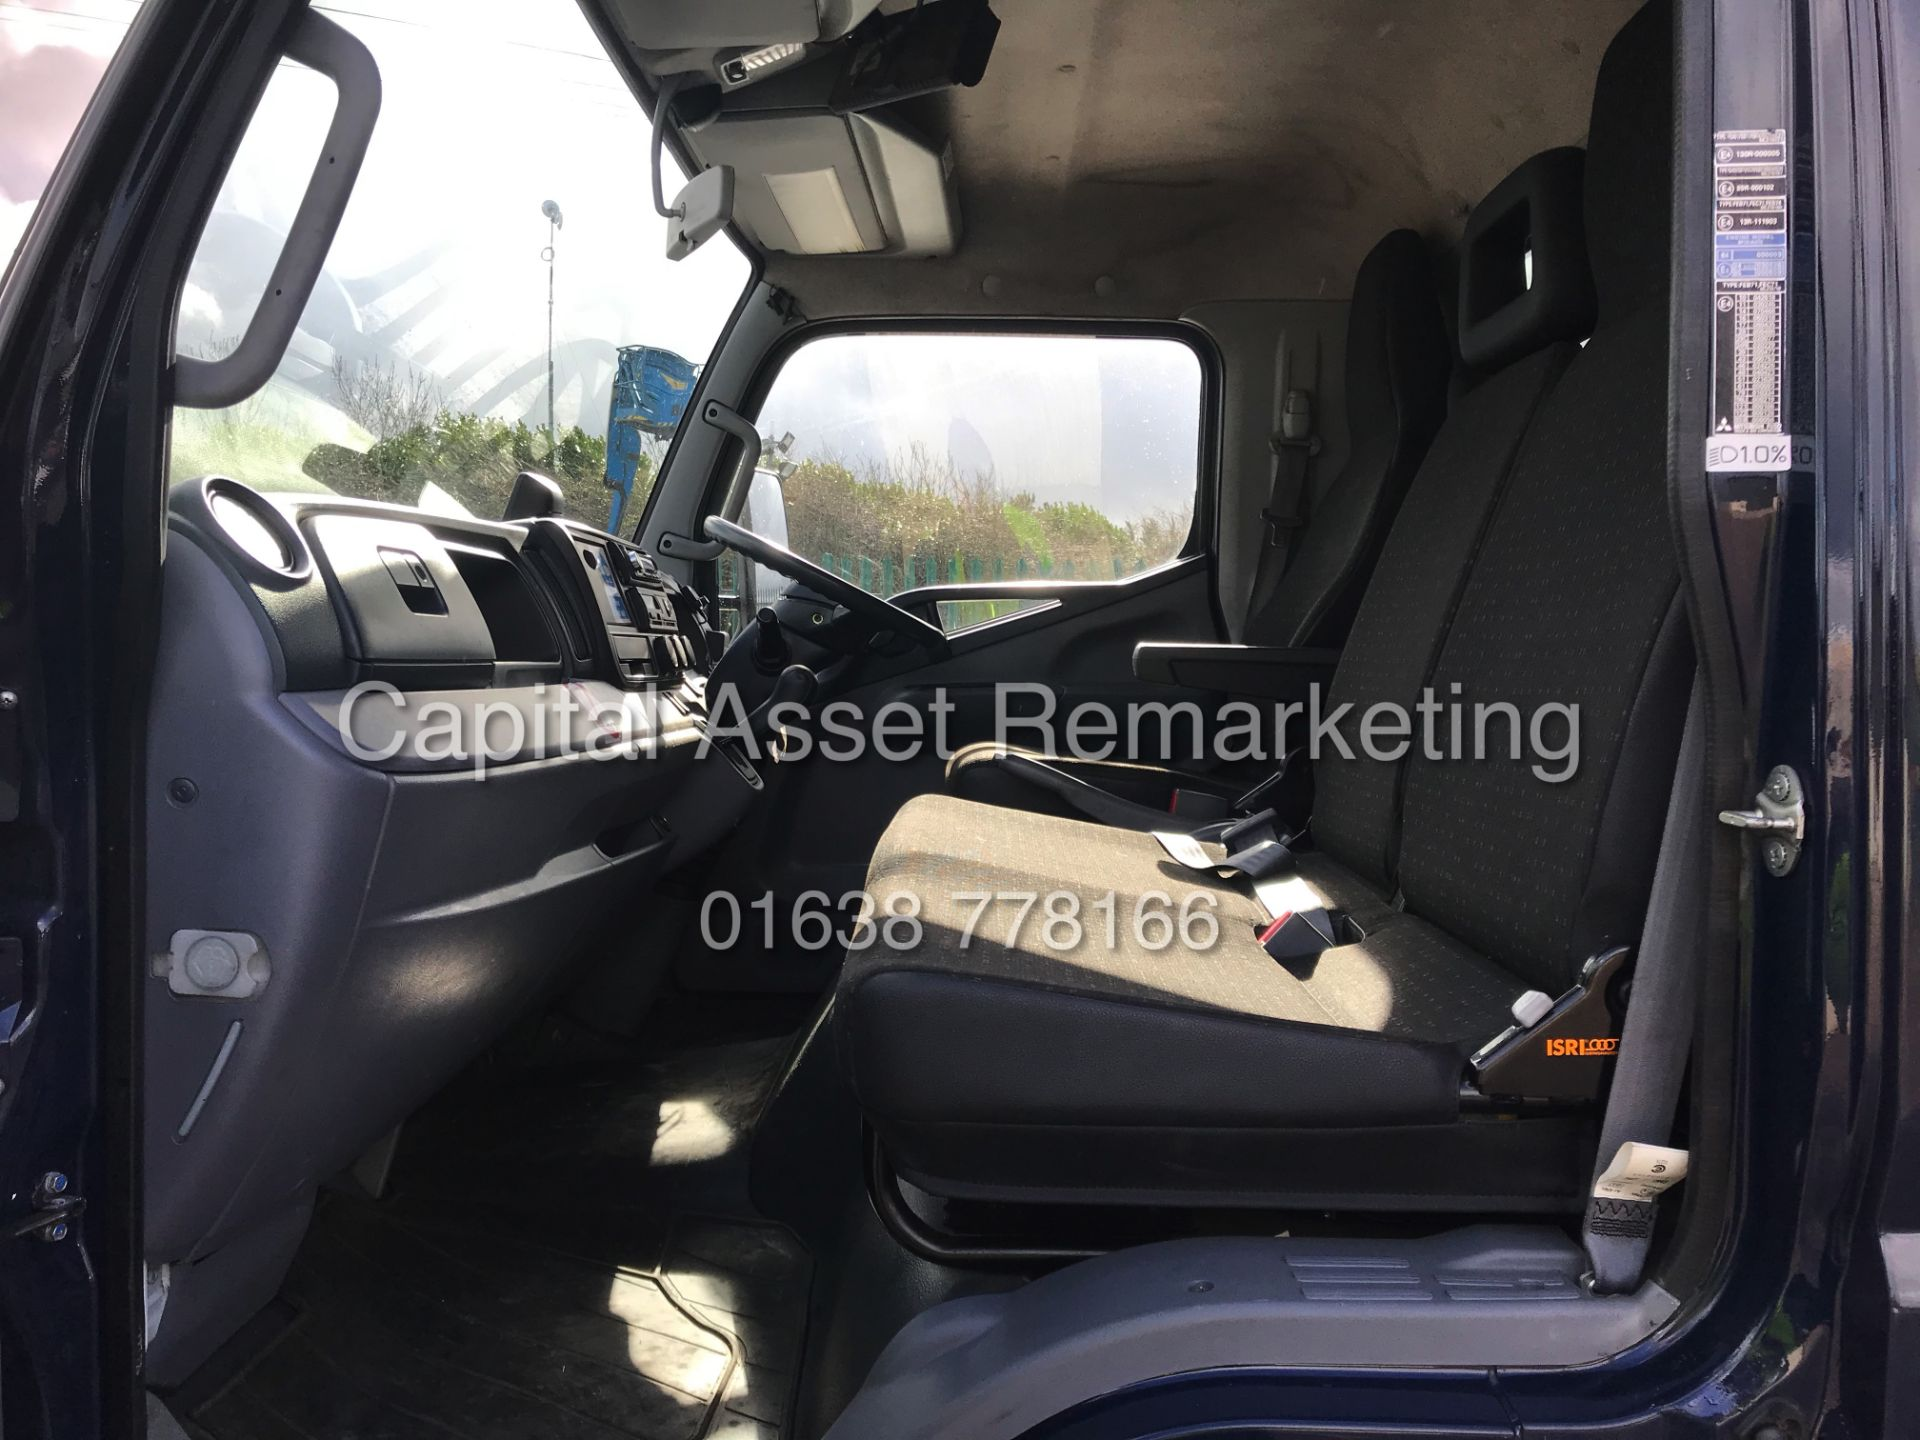 (ON SALE) MITSUBISHI FUSO CANTER 7C18 (16 REG) 1 OWNER *EURO 6* AD-BLUE - 4 WAY CAMERA SYSTEM - Image 19 of 20